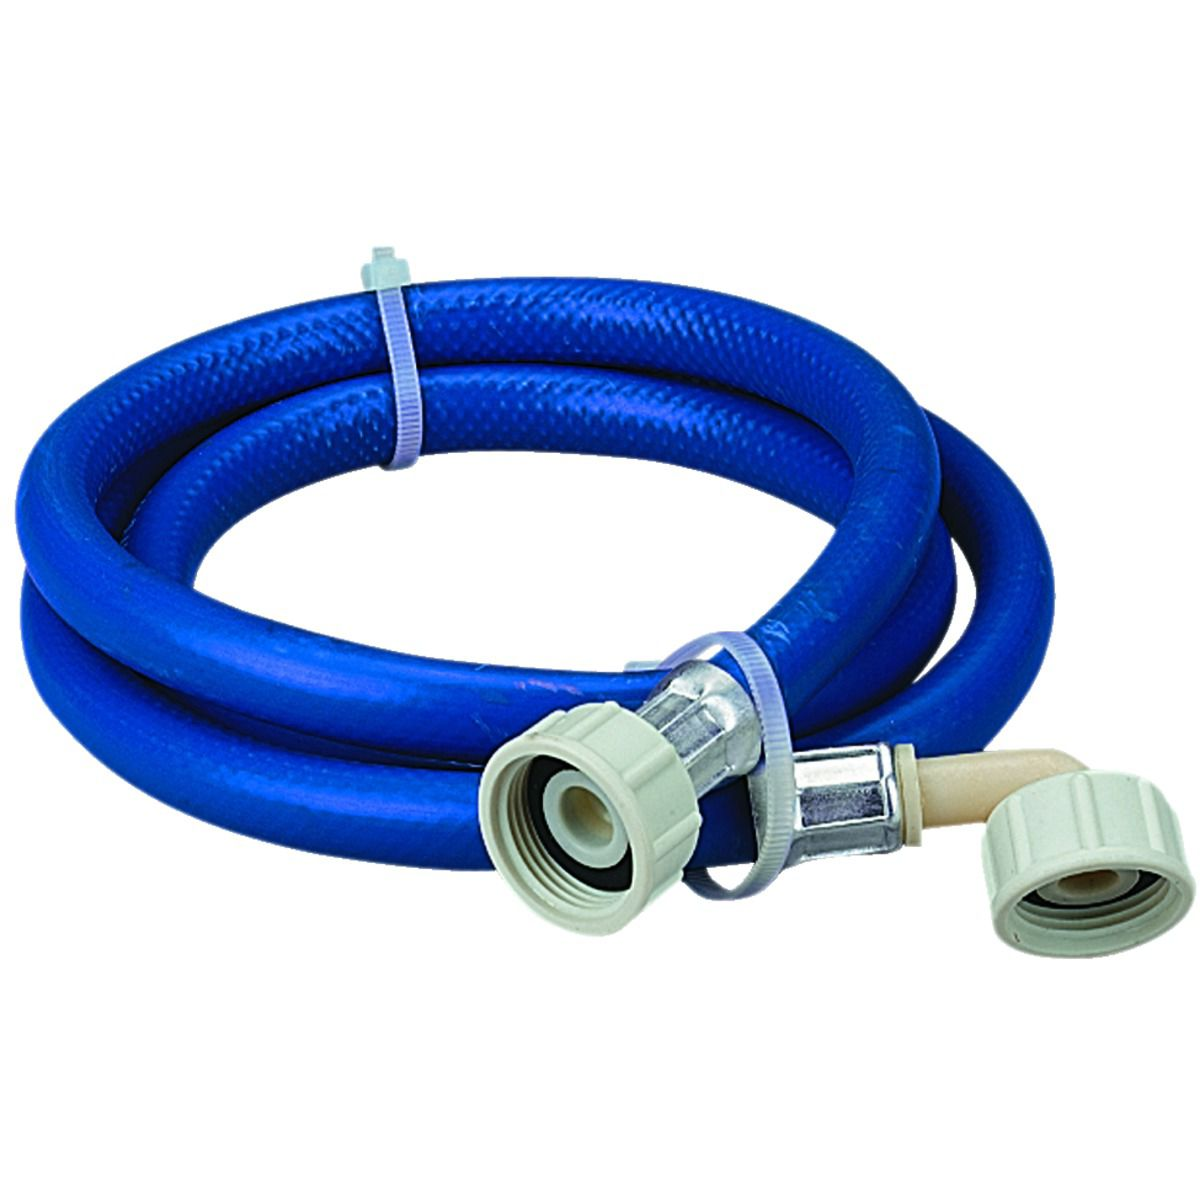 Washing Machine Hoses